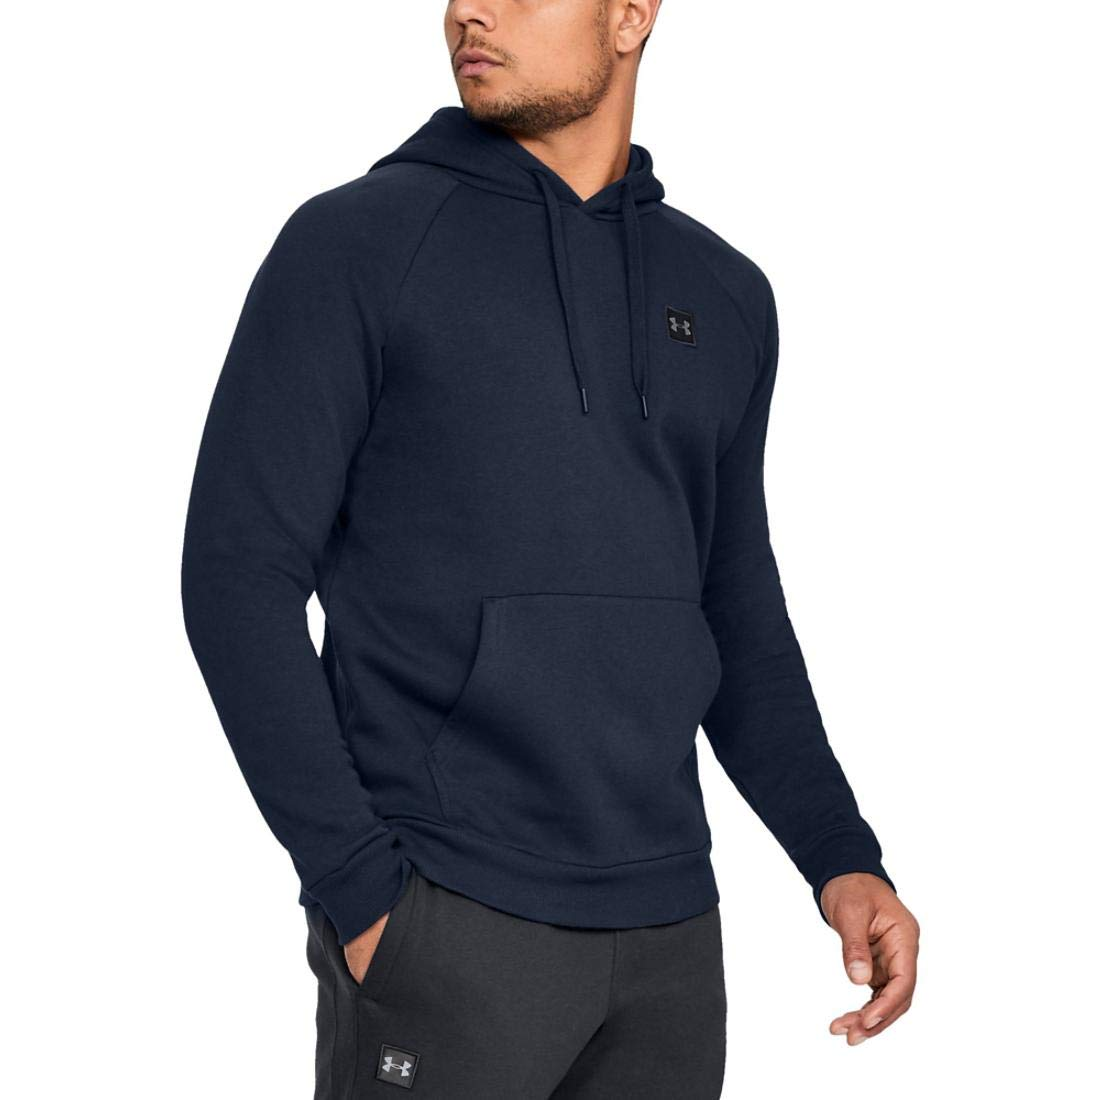 Under Armour Mens Rival Fleece Pullover Hoodie